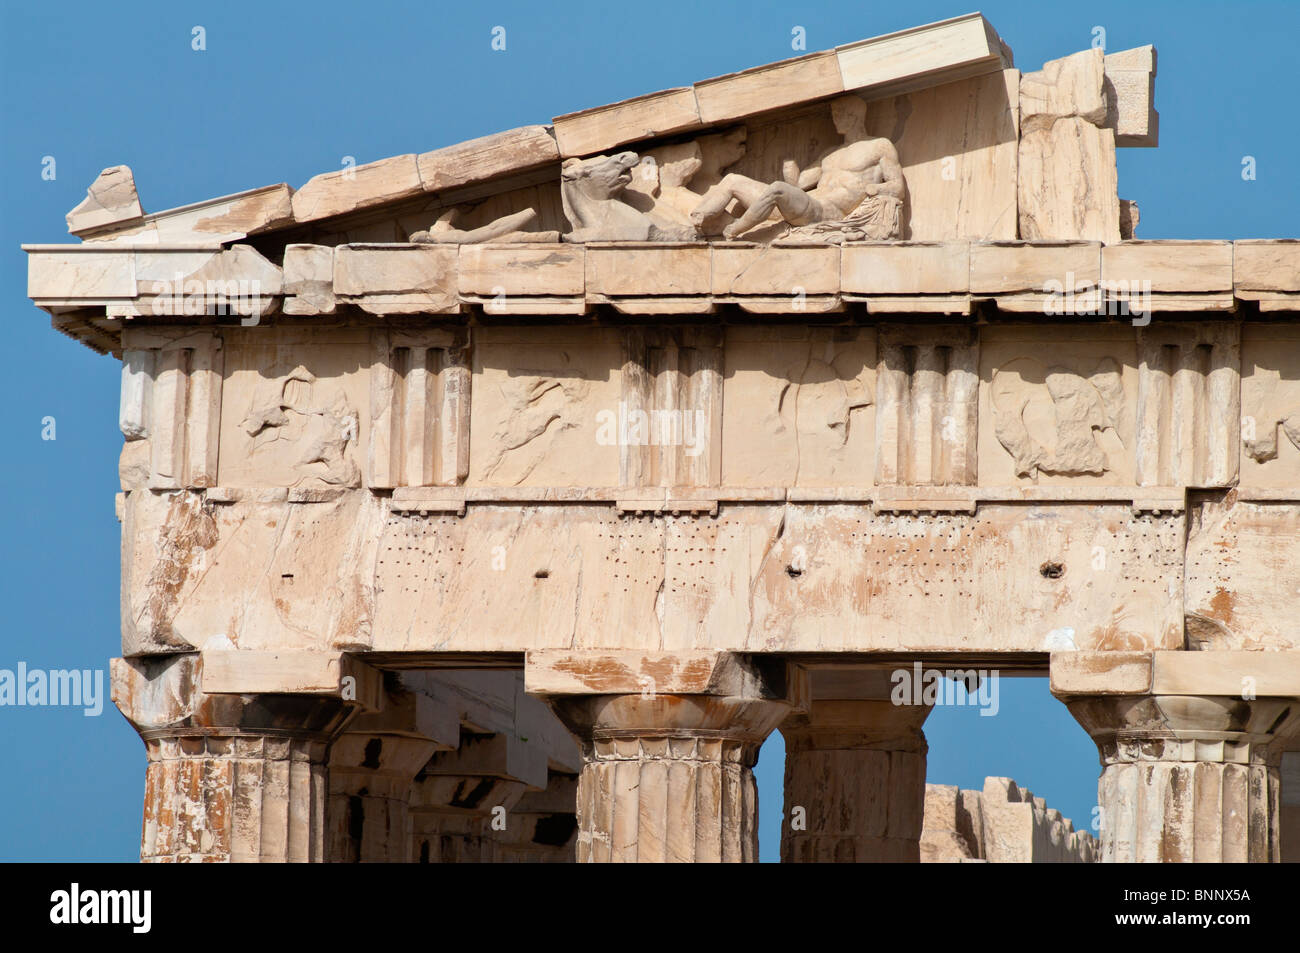 Detail of the eastern pediment and entablature of the Parthenon. Stock Photo